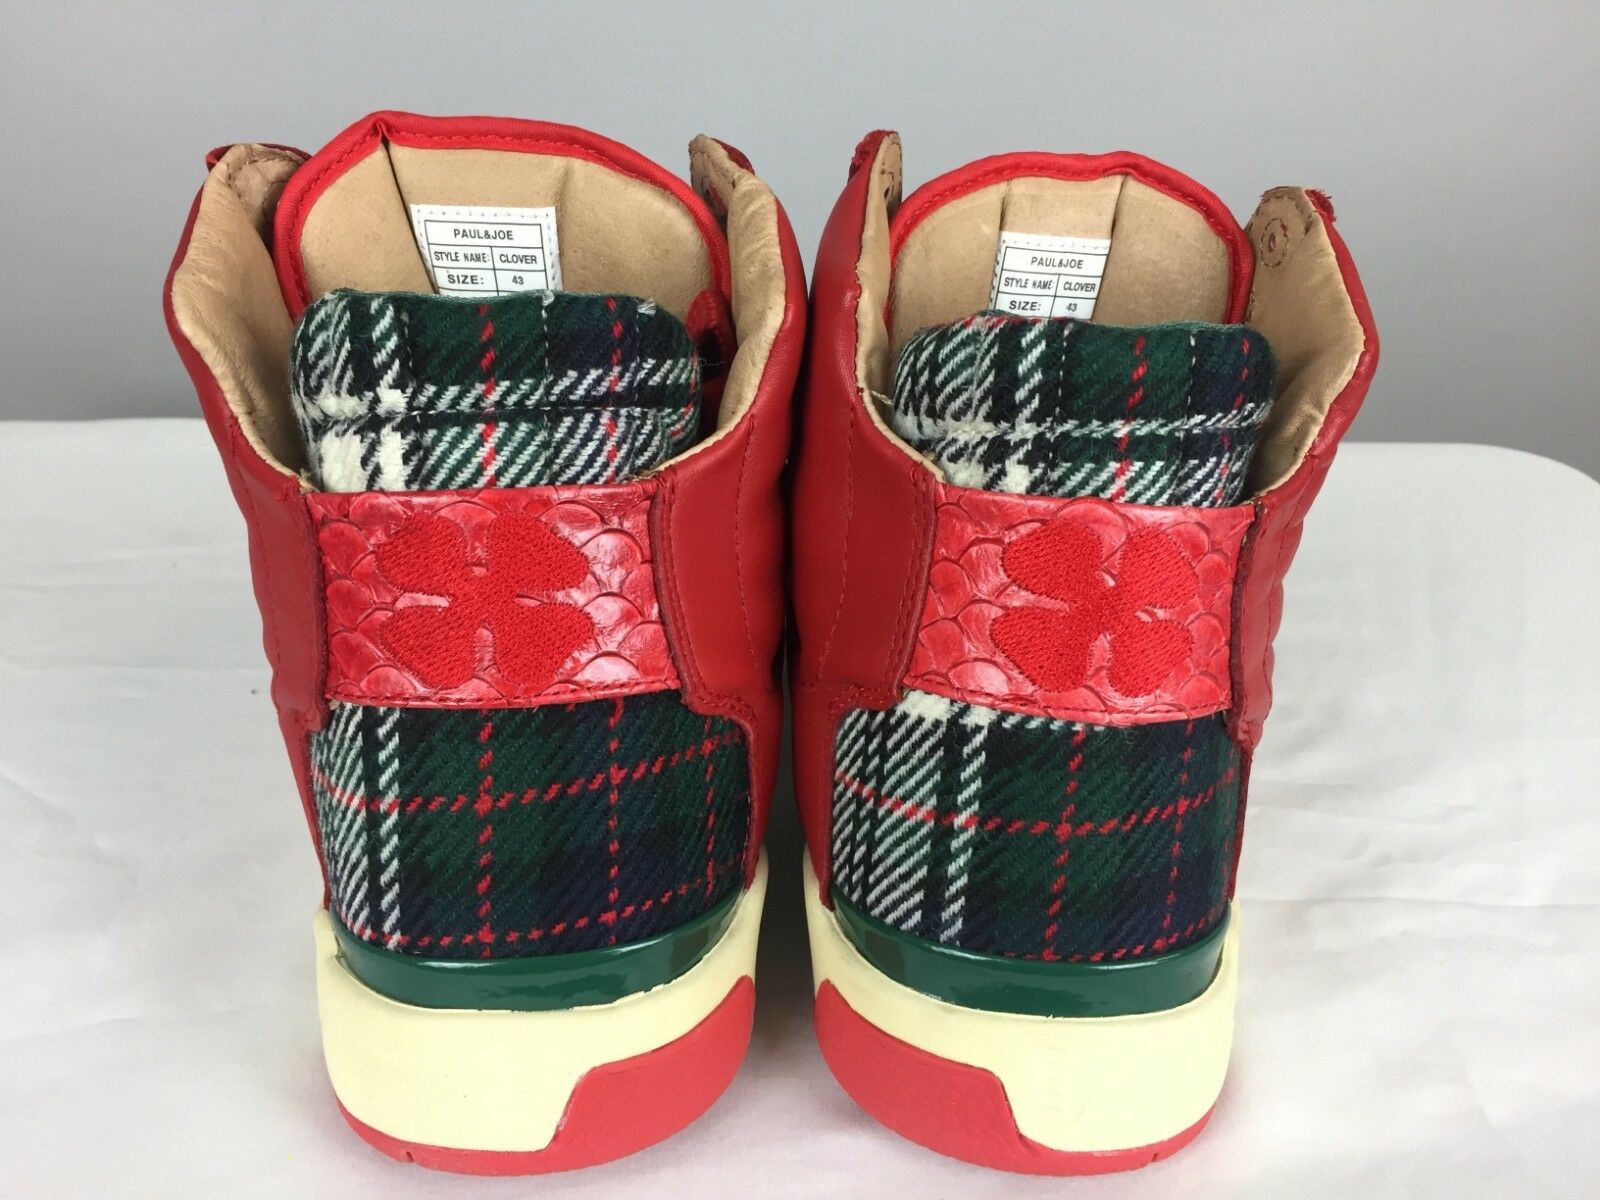 PAUL ROT/Grün & JOE X TERRA PLANA ROT/Grün PAUL 'Clover' Hi-Top Tartan/Skull Trainers. UK 9 65431f